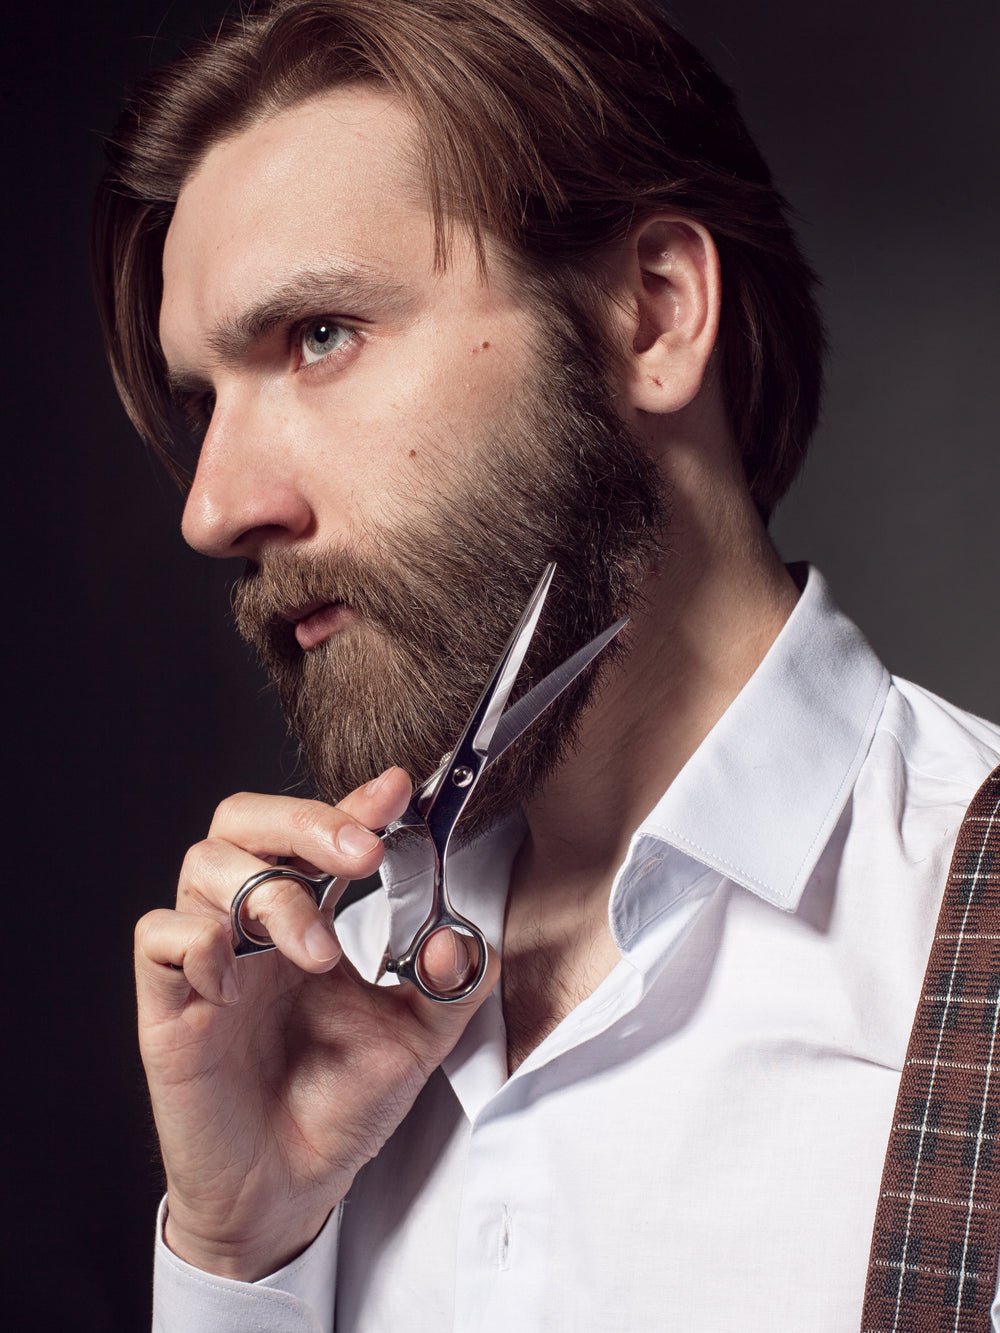 Dark haired bearded man using Beard Reverence scissors to trim his beard.